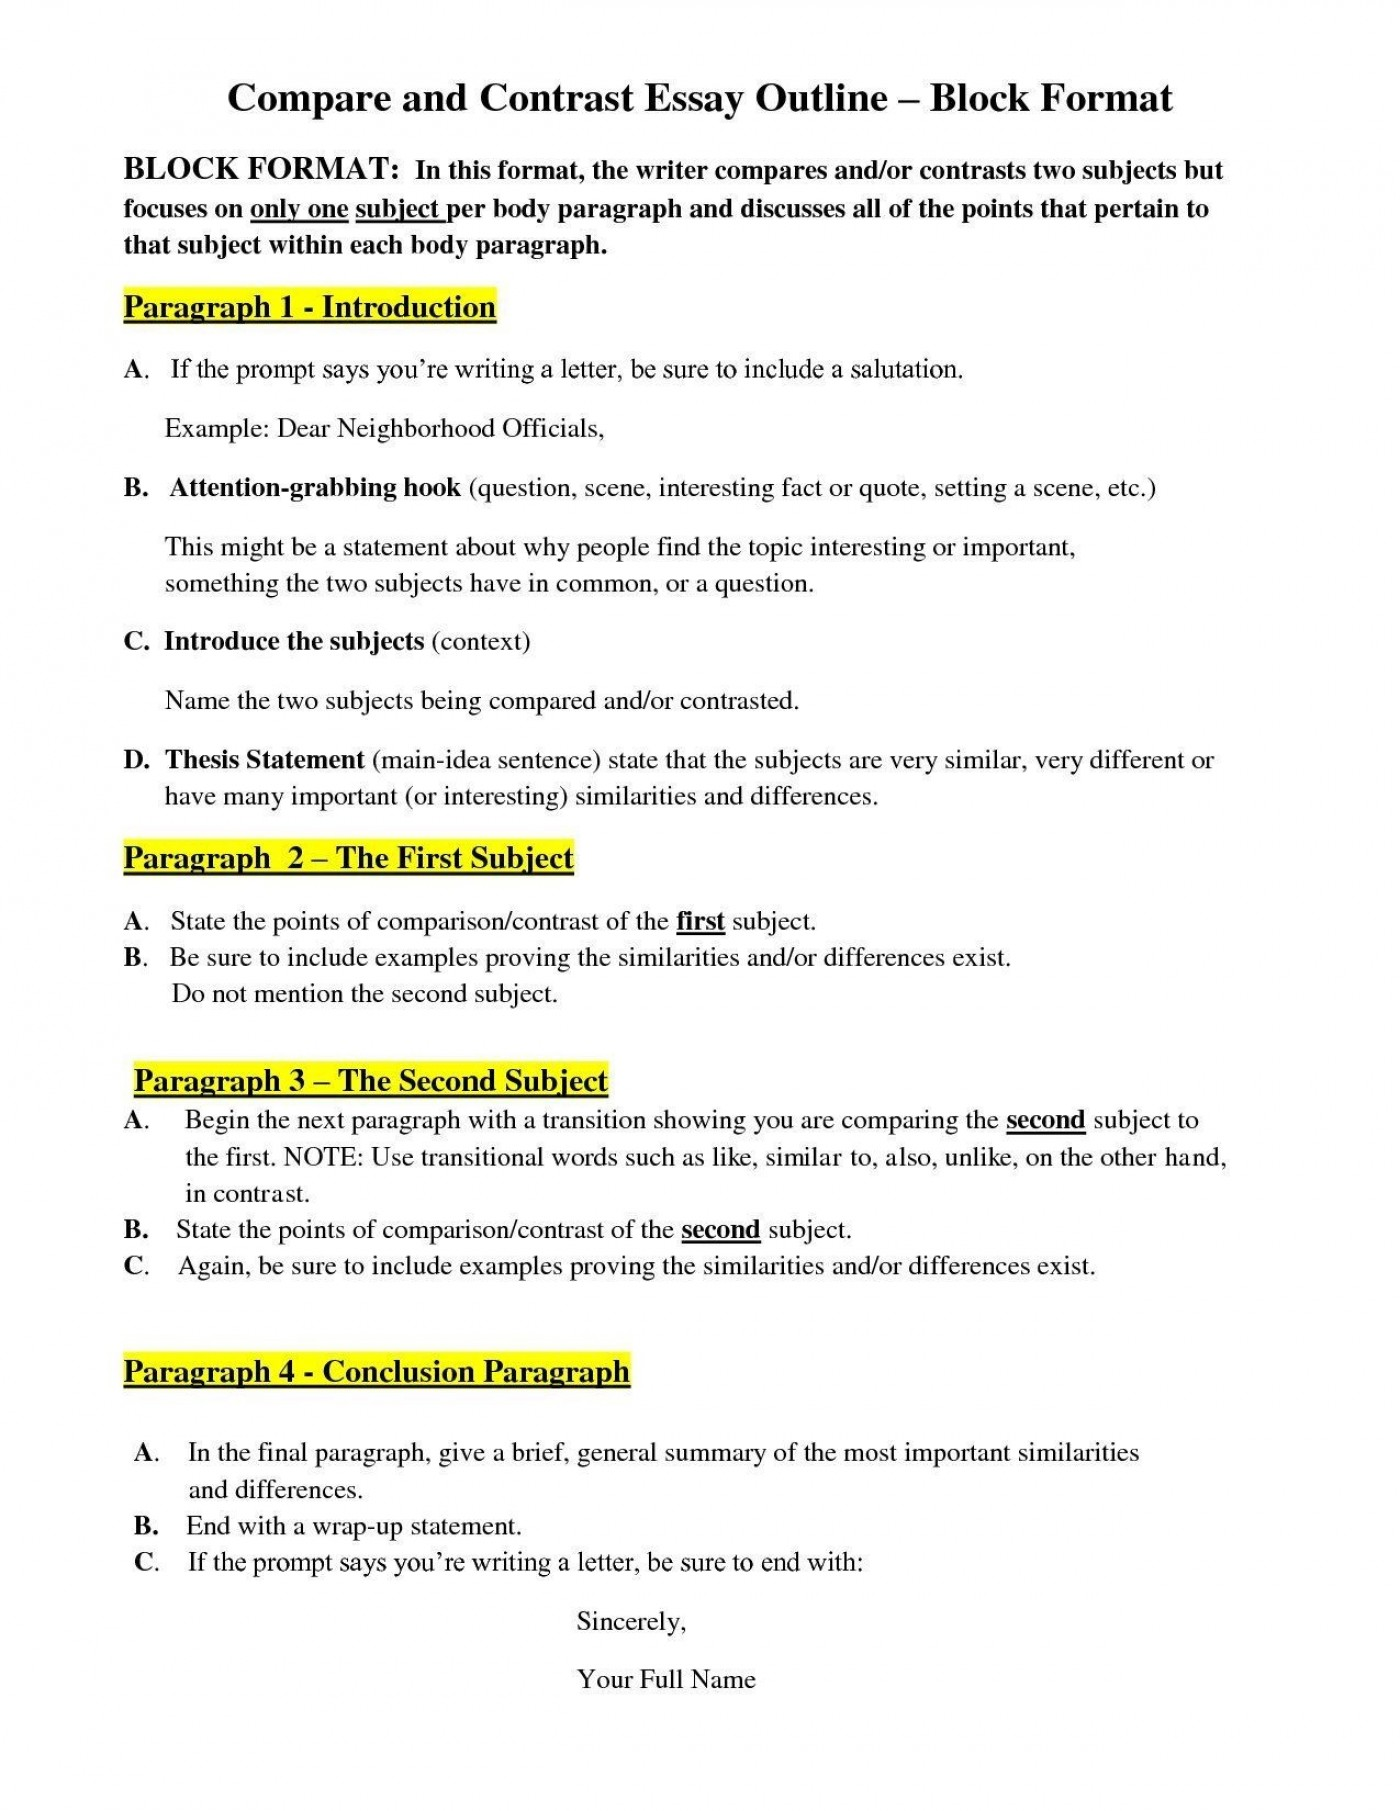 014 Essay Examplempare Andntrastmparison Best Examples Of Scenario In 6th Grade An Goo 3rd Food 5th Middle School Block Format Pdf High 4th Vs Striking Compare And Contrast Example For College Students Topics 7th 1400